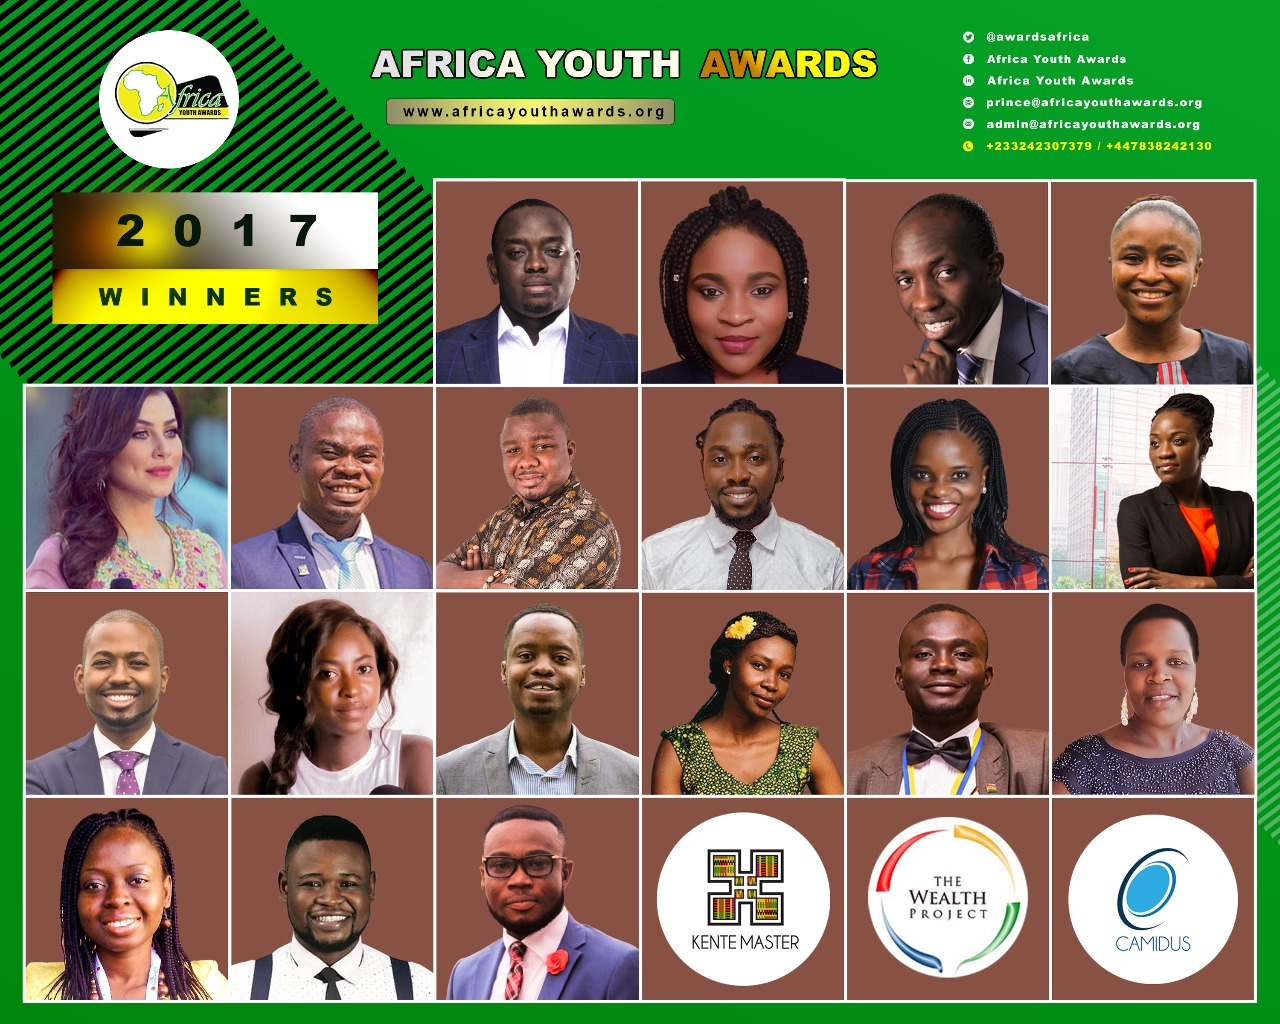 Photo of 3 Kenyans Announced Among Winners Of 2017 Africa Youth Awards